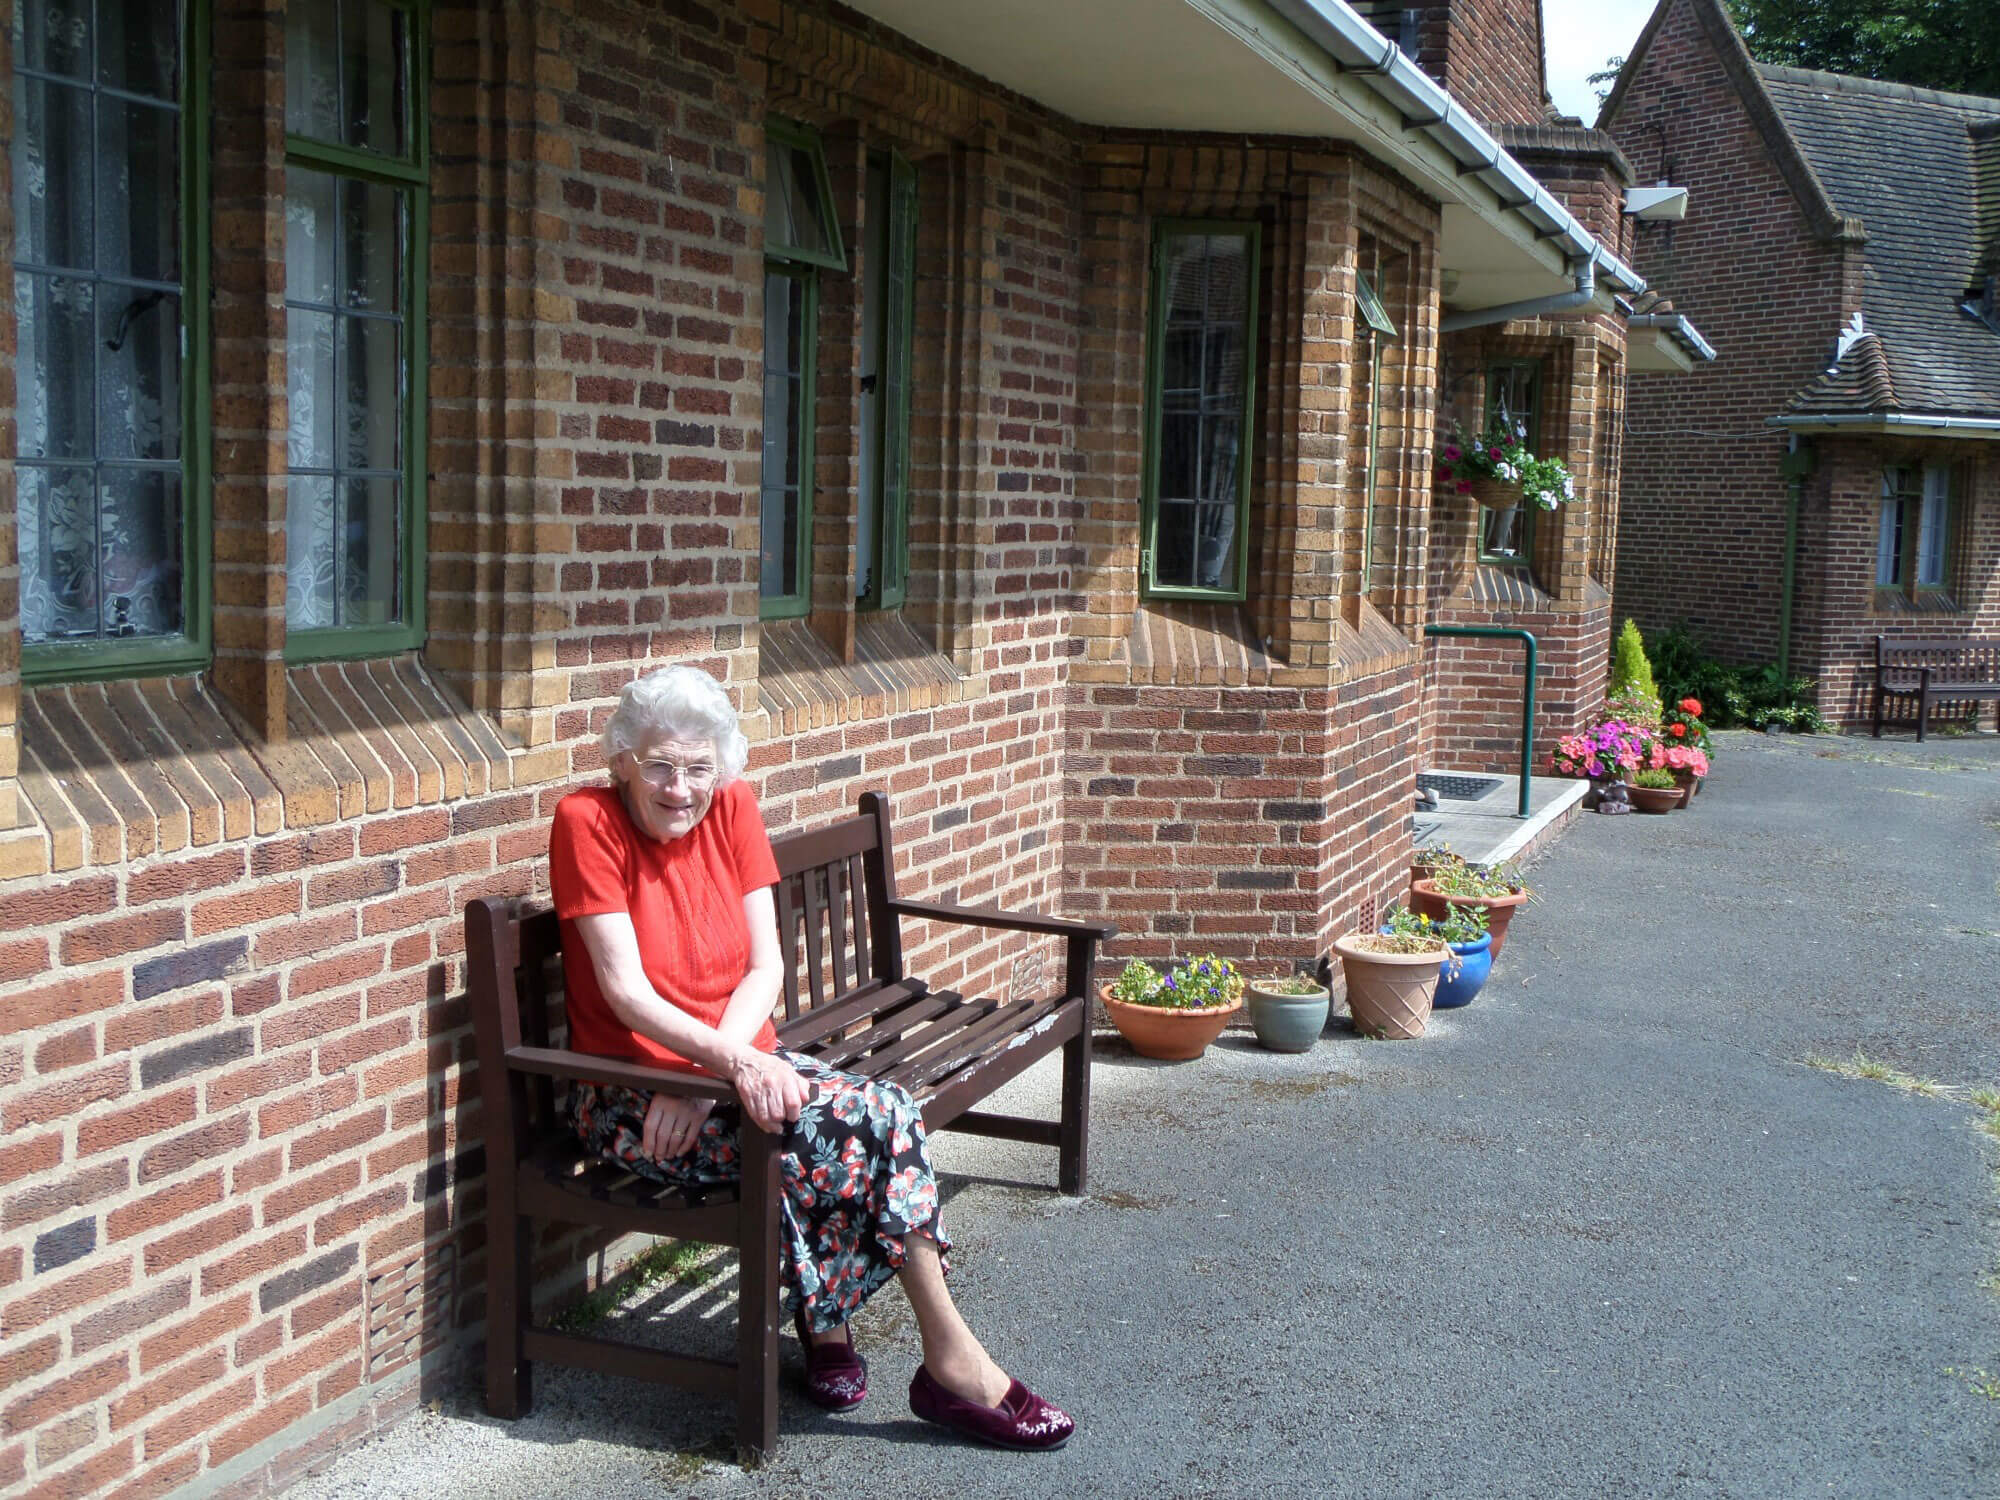 Elderly resident of Glover's Trust almshouses